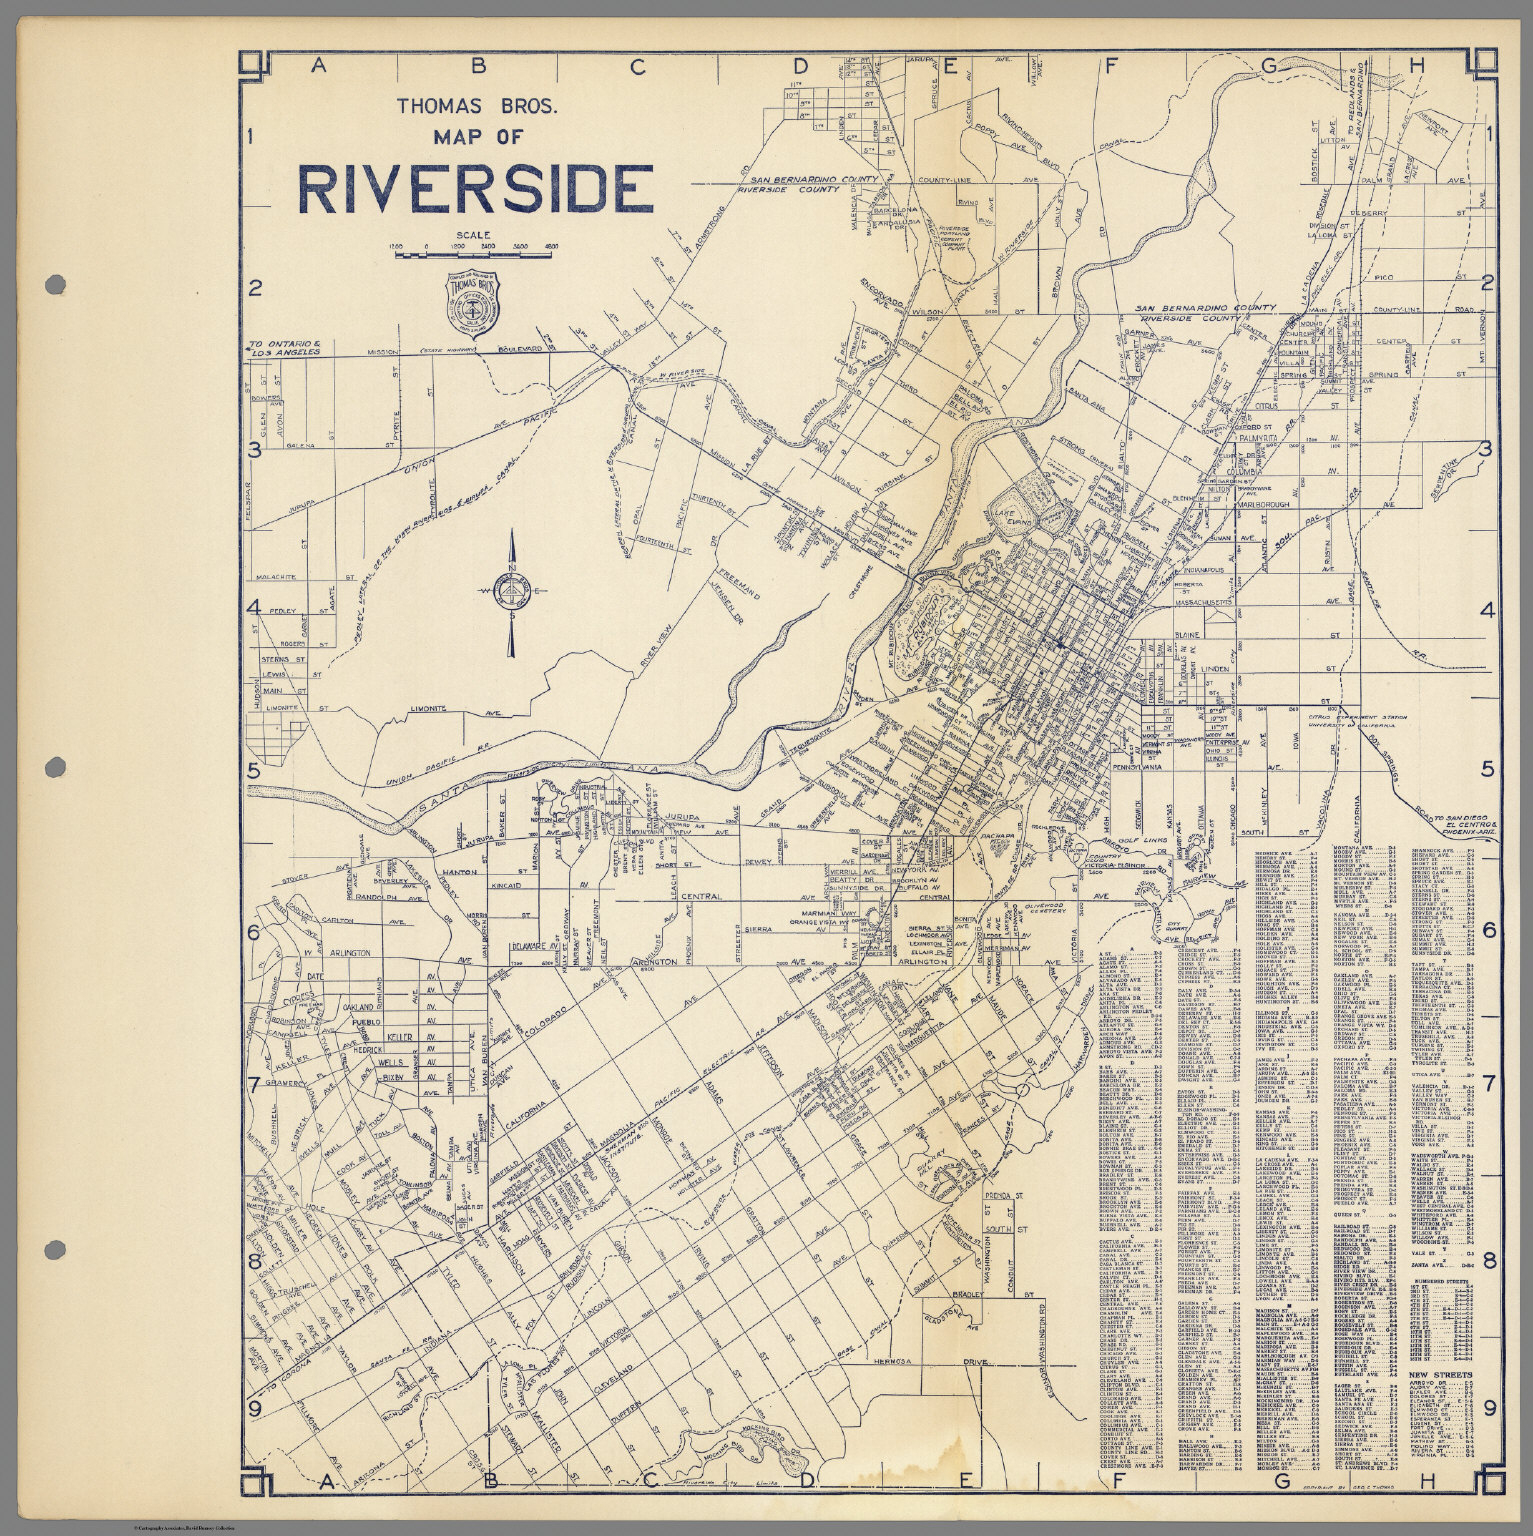 Thomas Bros. Map Of Riverside, California. - David Rumsey Historical - Printable Map Of Riverside Ca